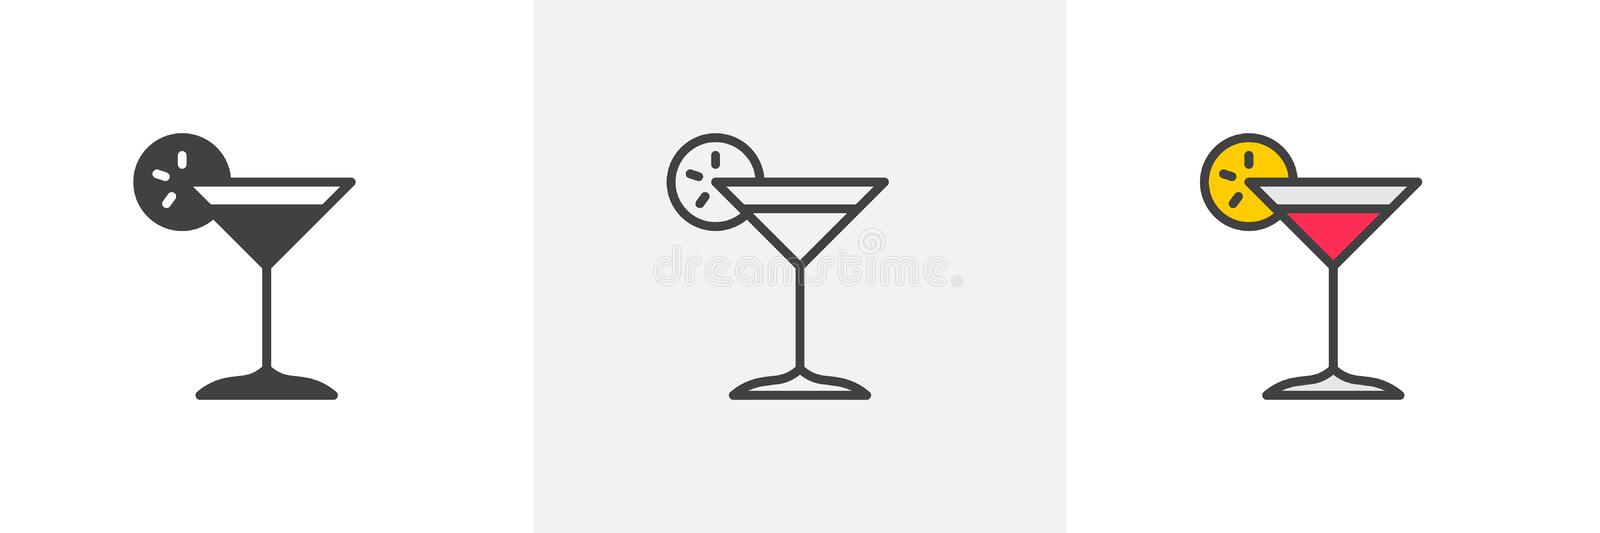 Margarita cocktail icon. Line, glyph and filled outline colorful version, Cocktail glass with lemon slice outline and filled vector sign. Bar symbol, logo stock illustration